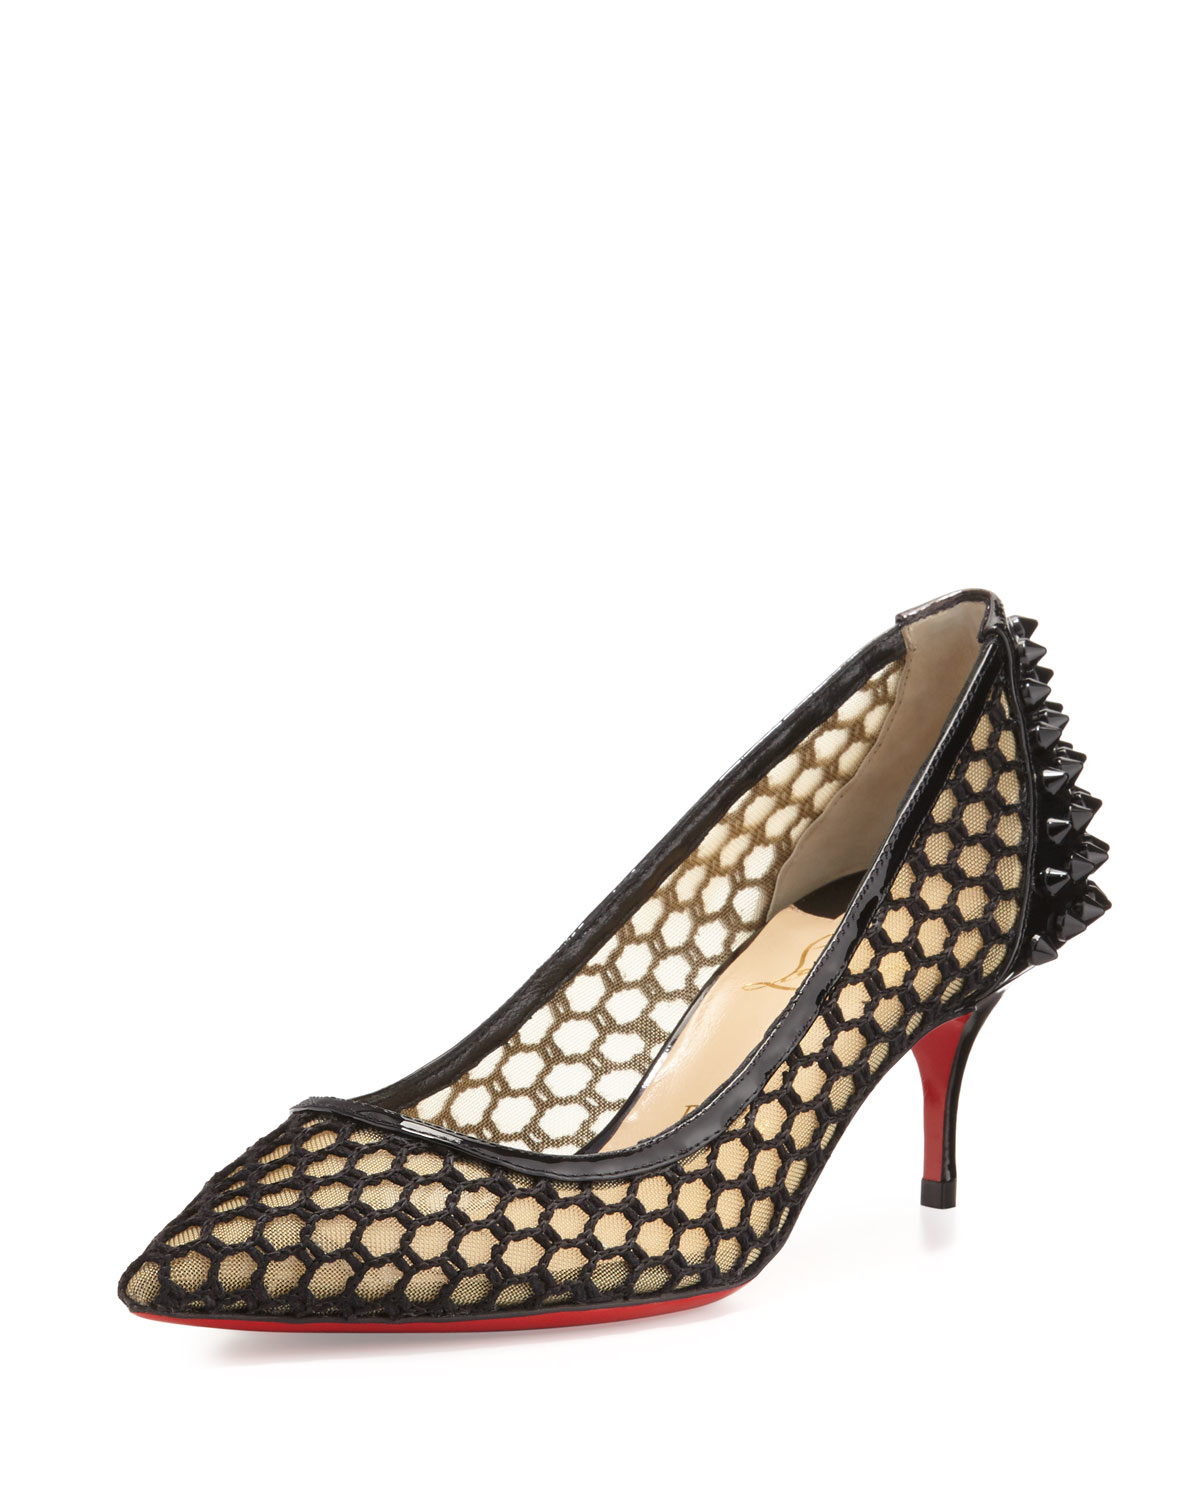 new product 34cb6 01940 Christian Louboutin Natural Guni Mesh Spike 55mm Red Sole Pump